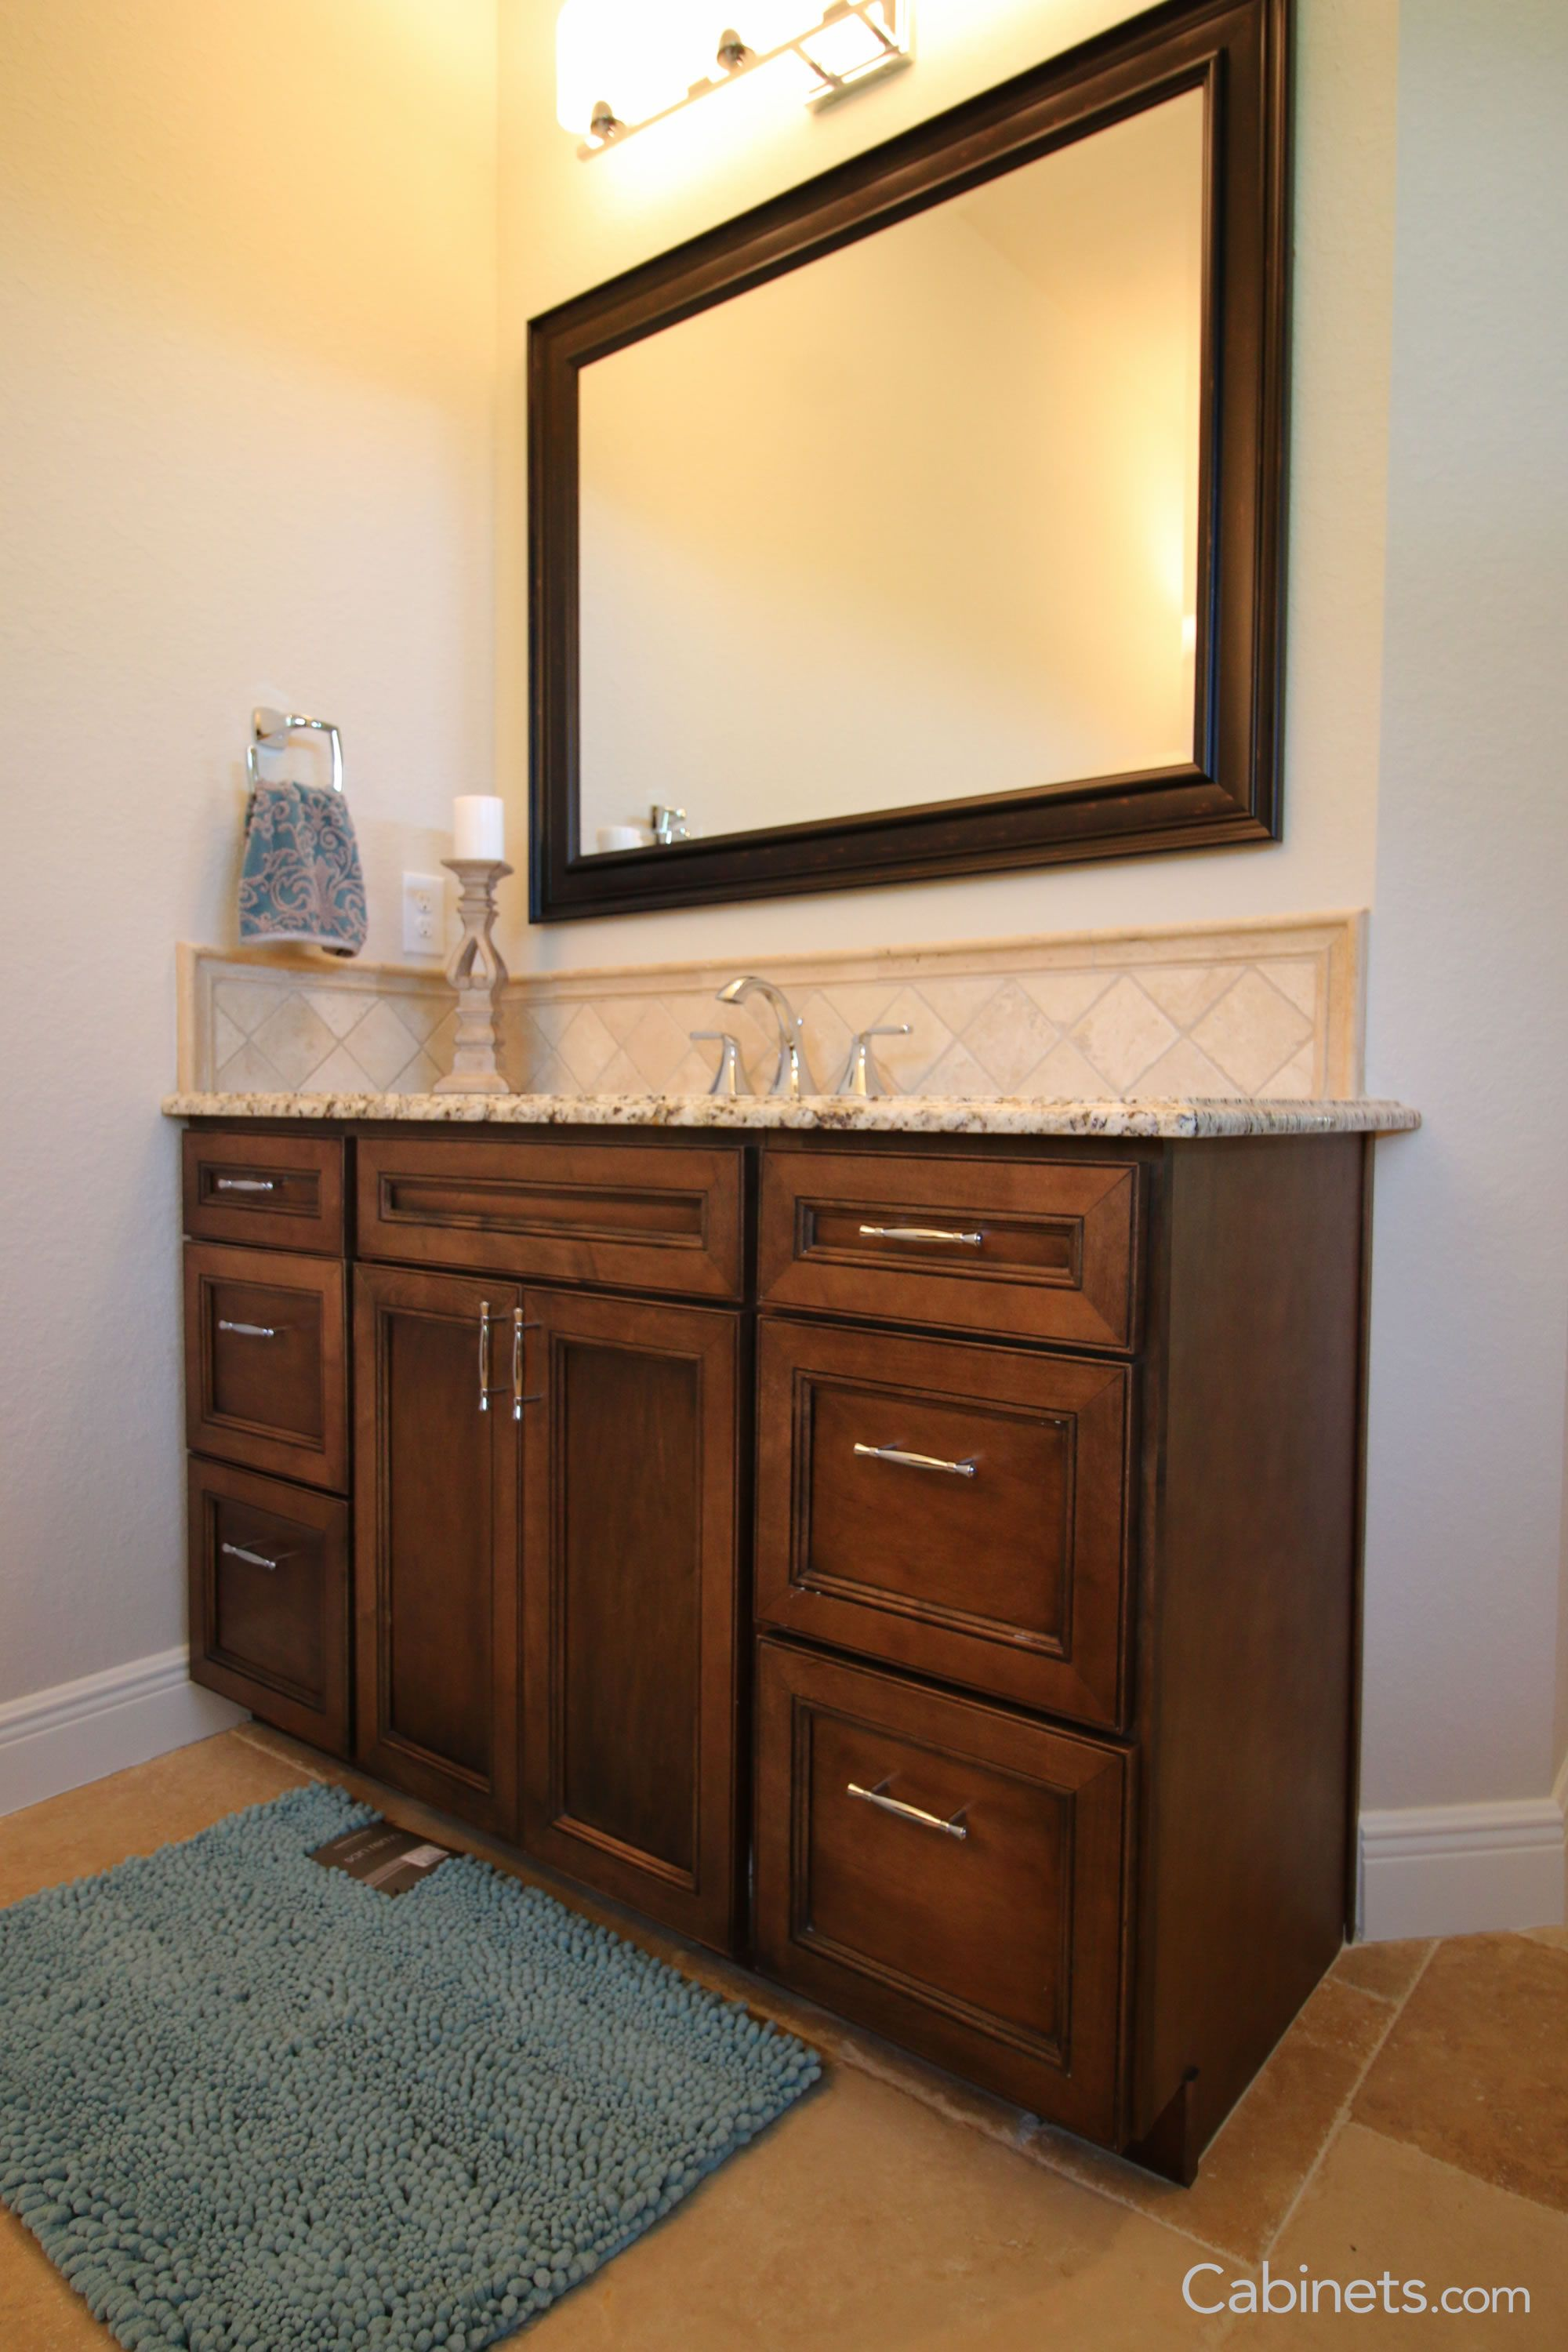 Belleair Maple Pecan Cabinets For Your Bathroom Cabinets Online Online Kitchen Cabinets Bathroom Cabinets